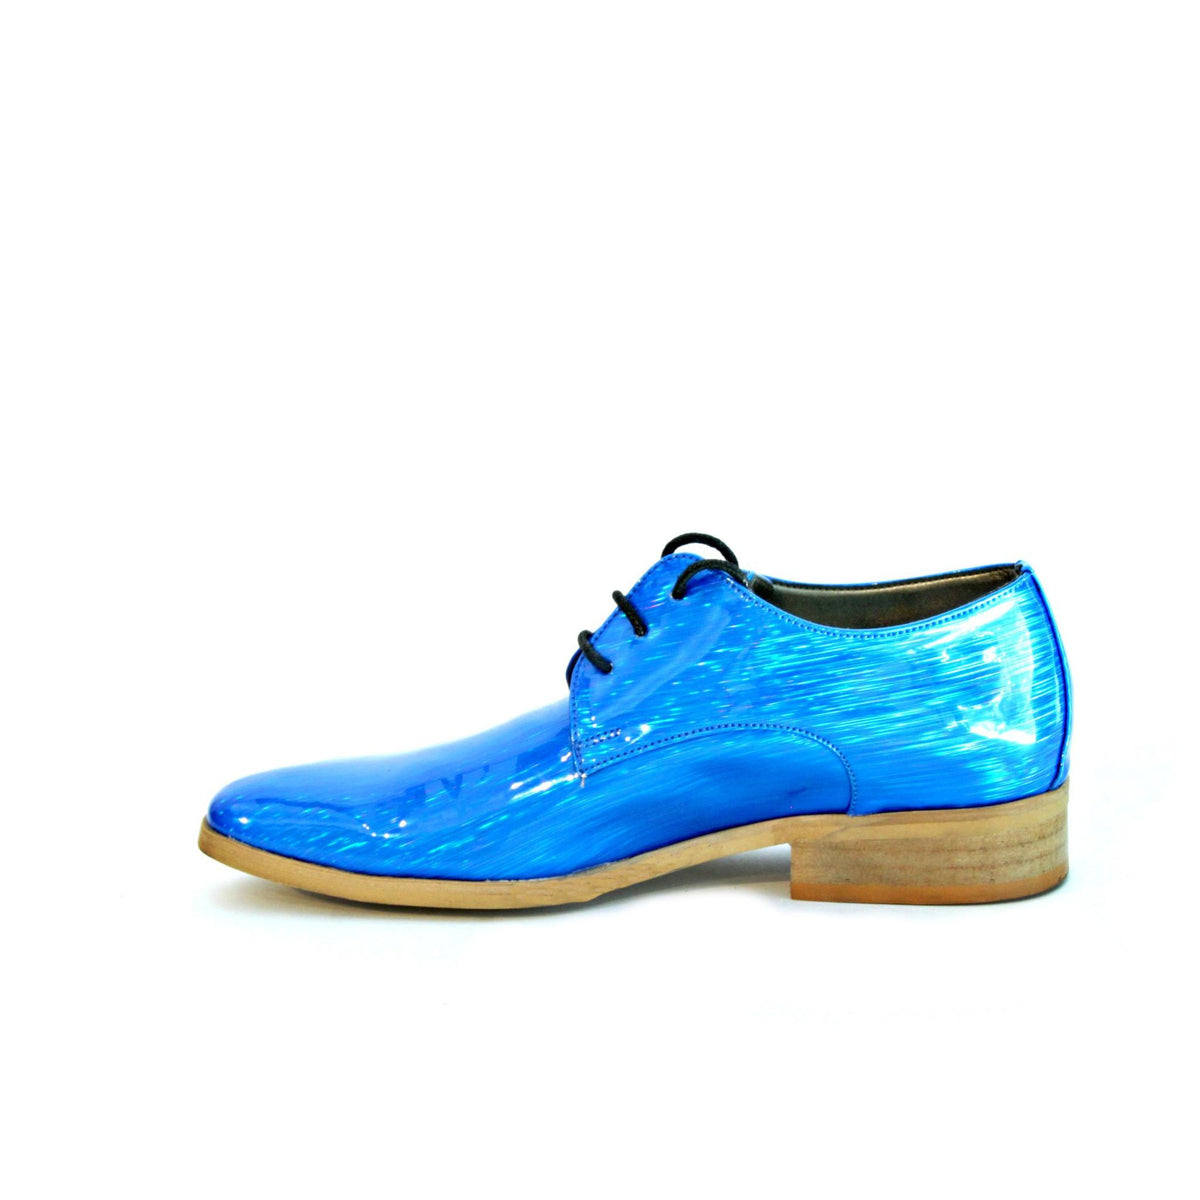 VEGAN Electric Blue Oxford Women's Shoes